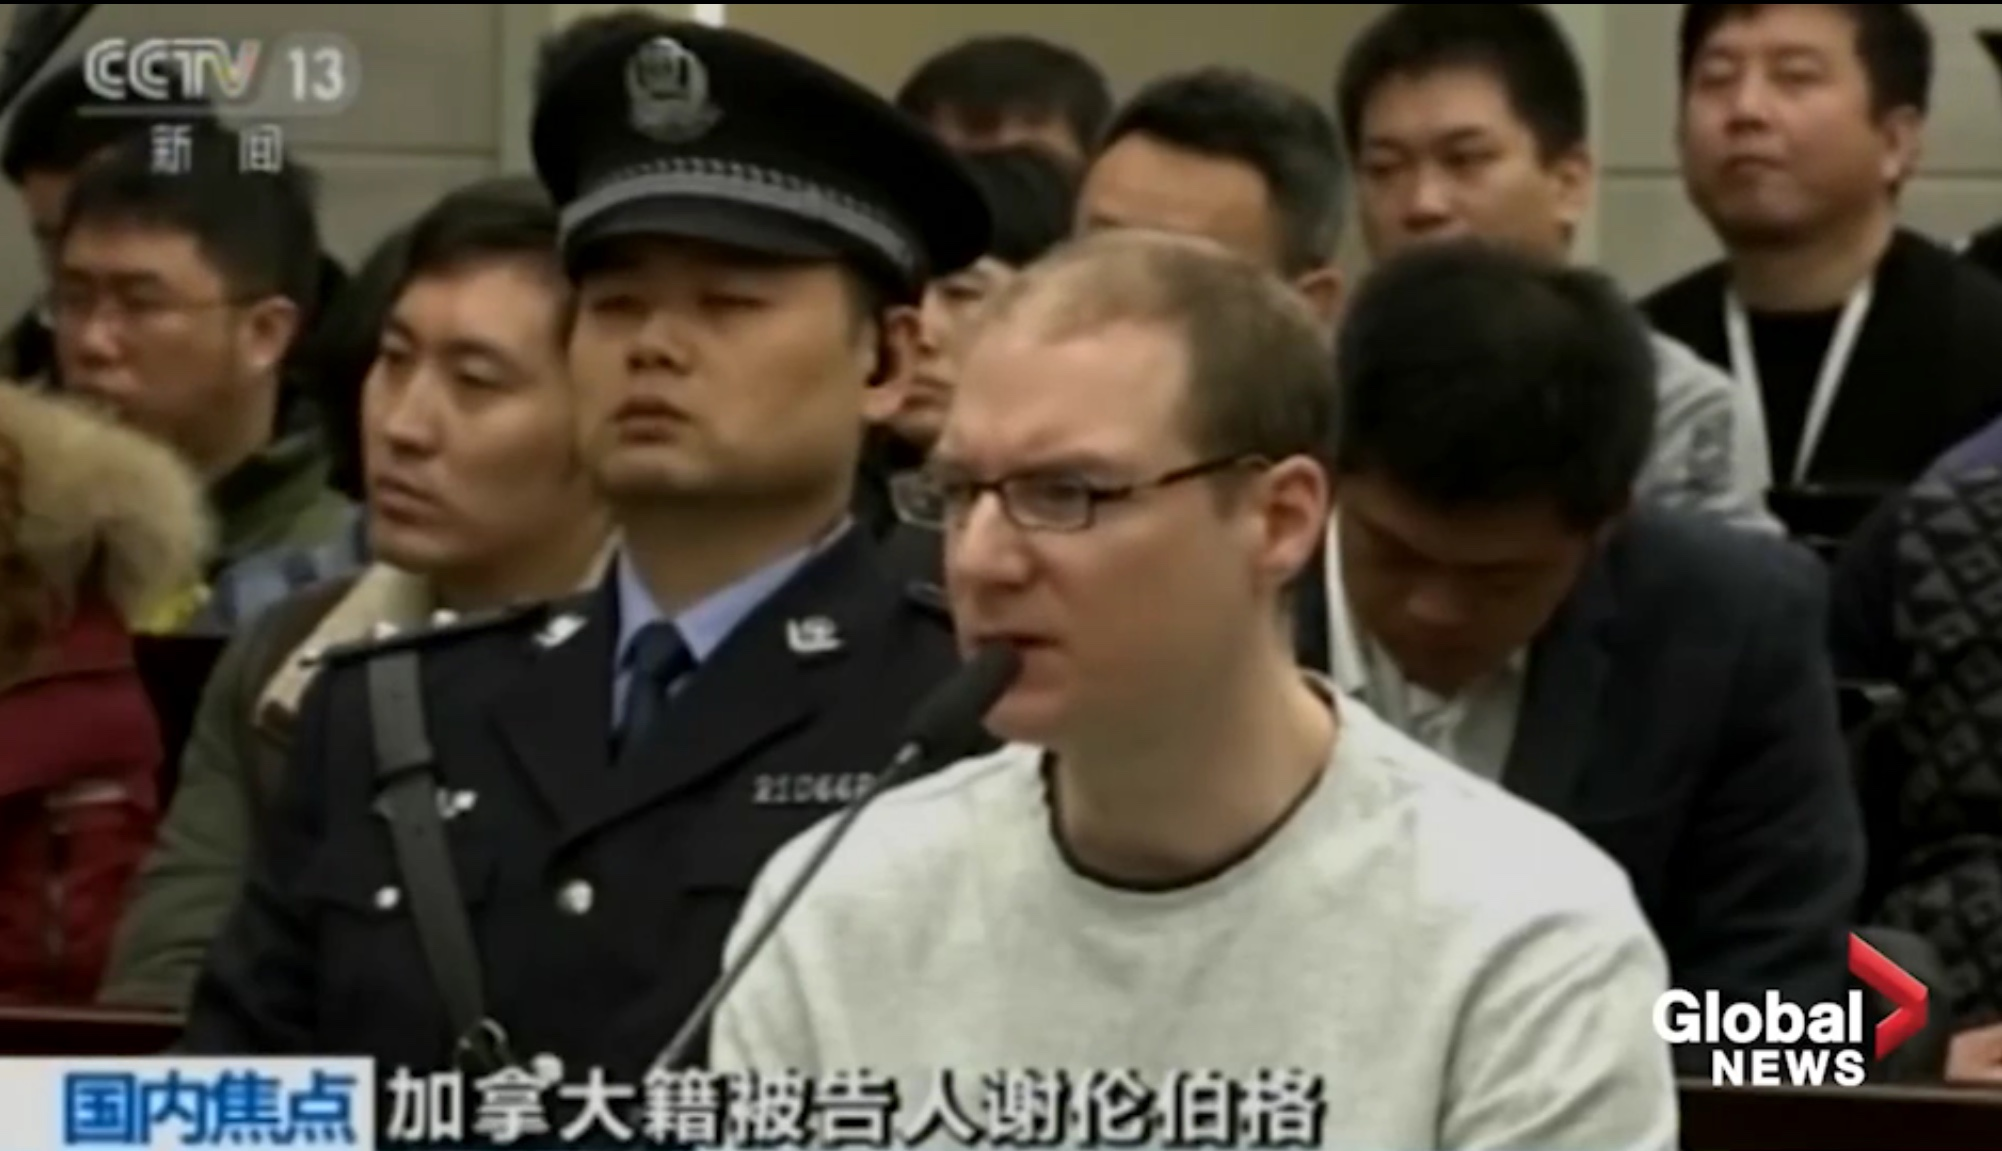 Canadian Robert Schellenberg is sentenced to the death penalty in a Chinese court on Jan. 14, 2019. Global News screenshot.